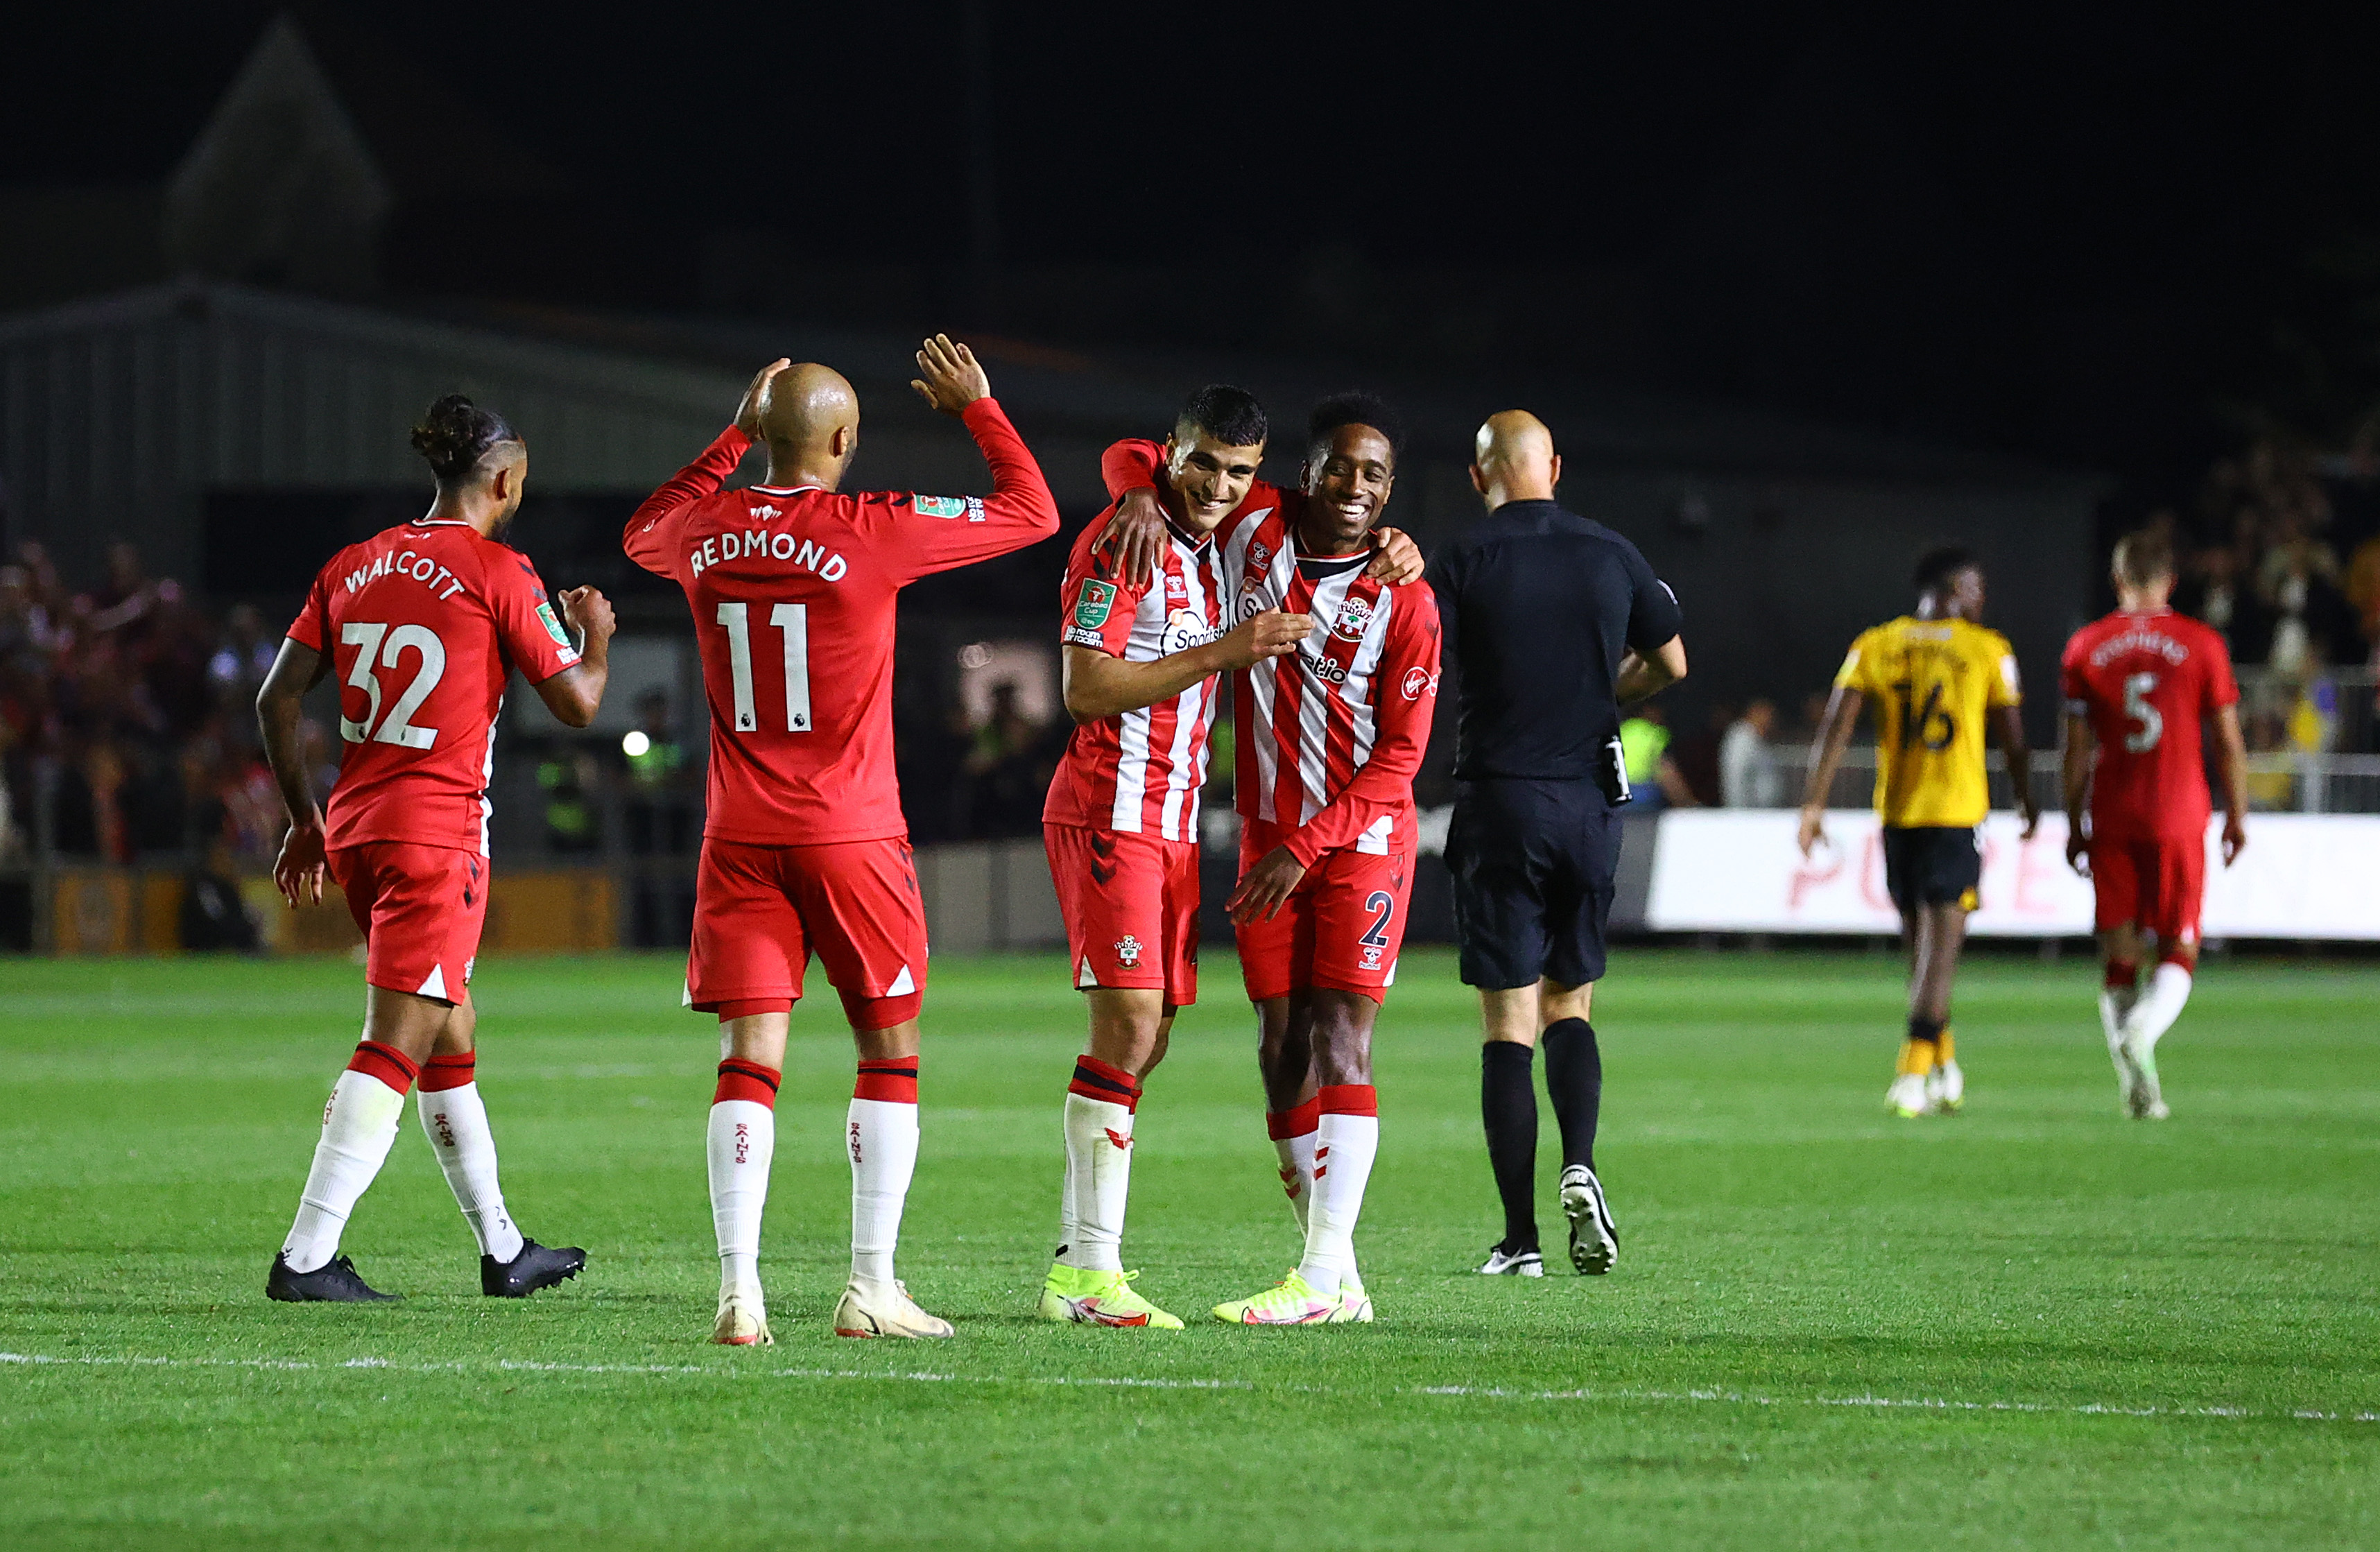 Newport County v Southampton - Carabao Cup Second Round, video, highlights, goals, match report